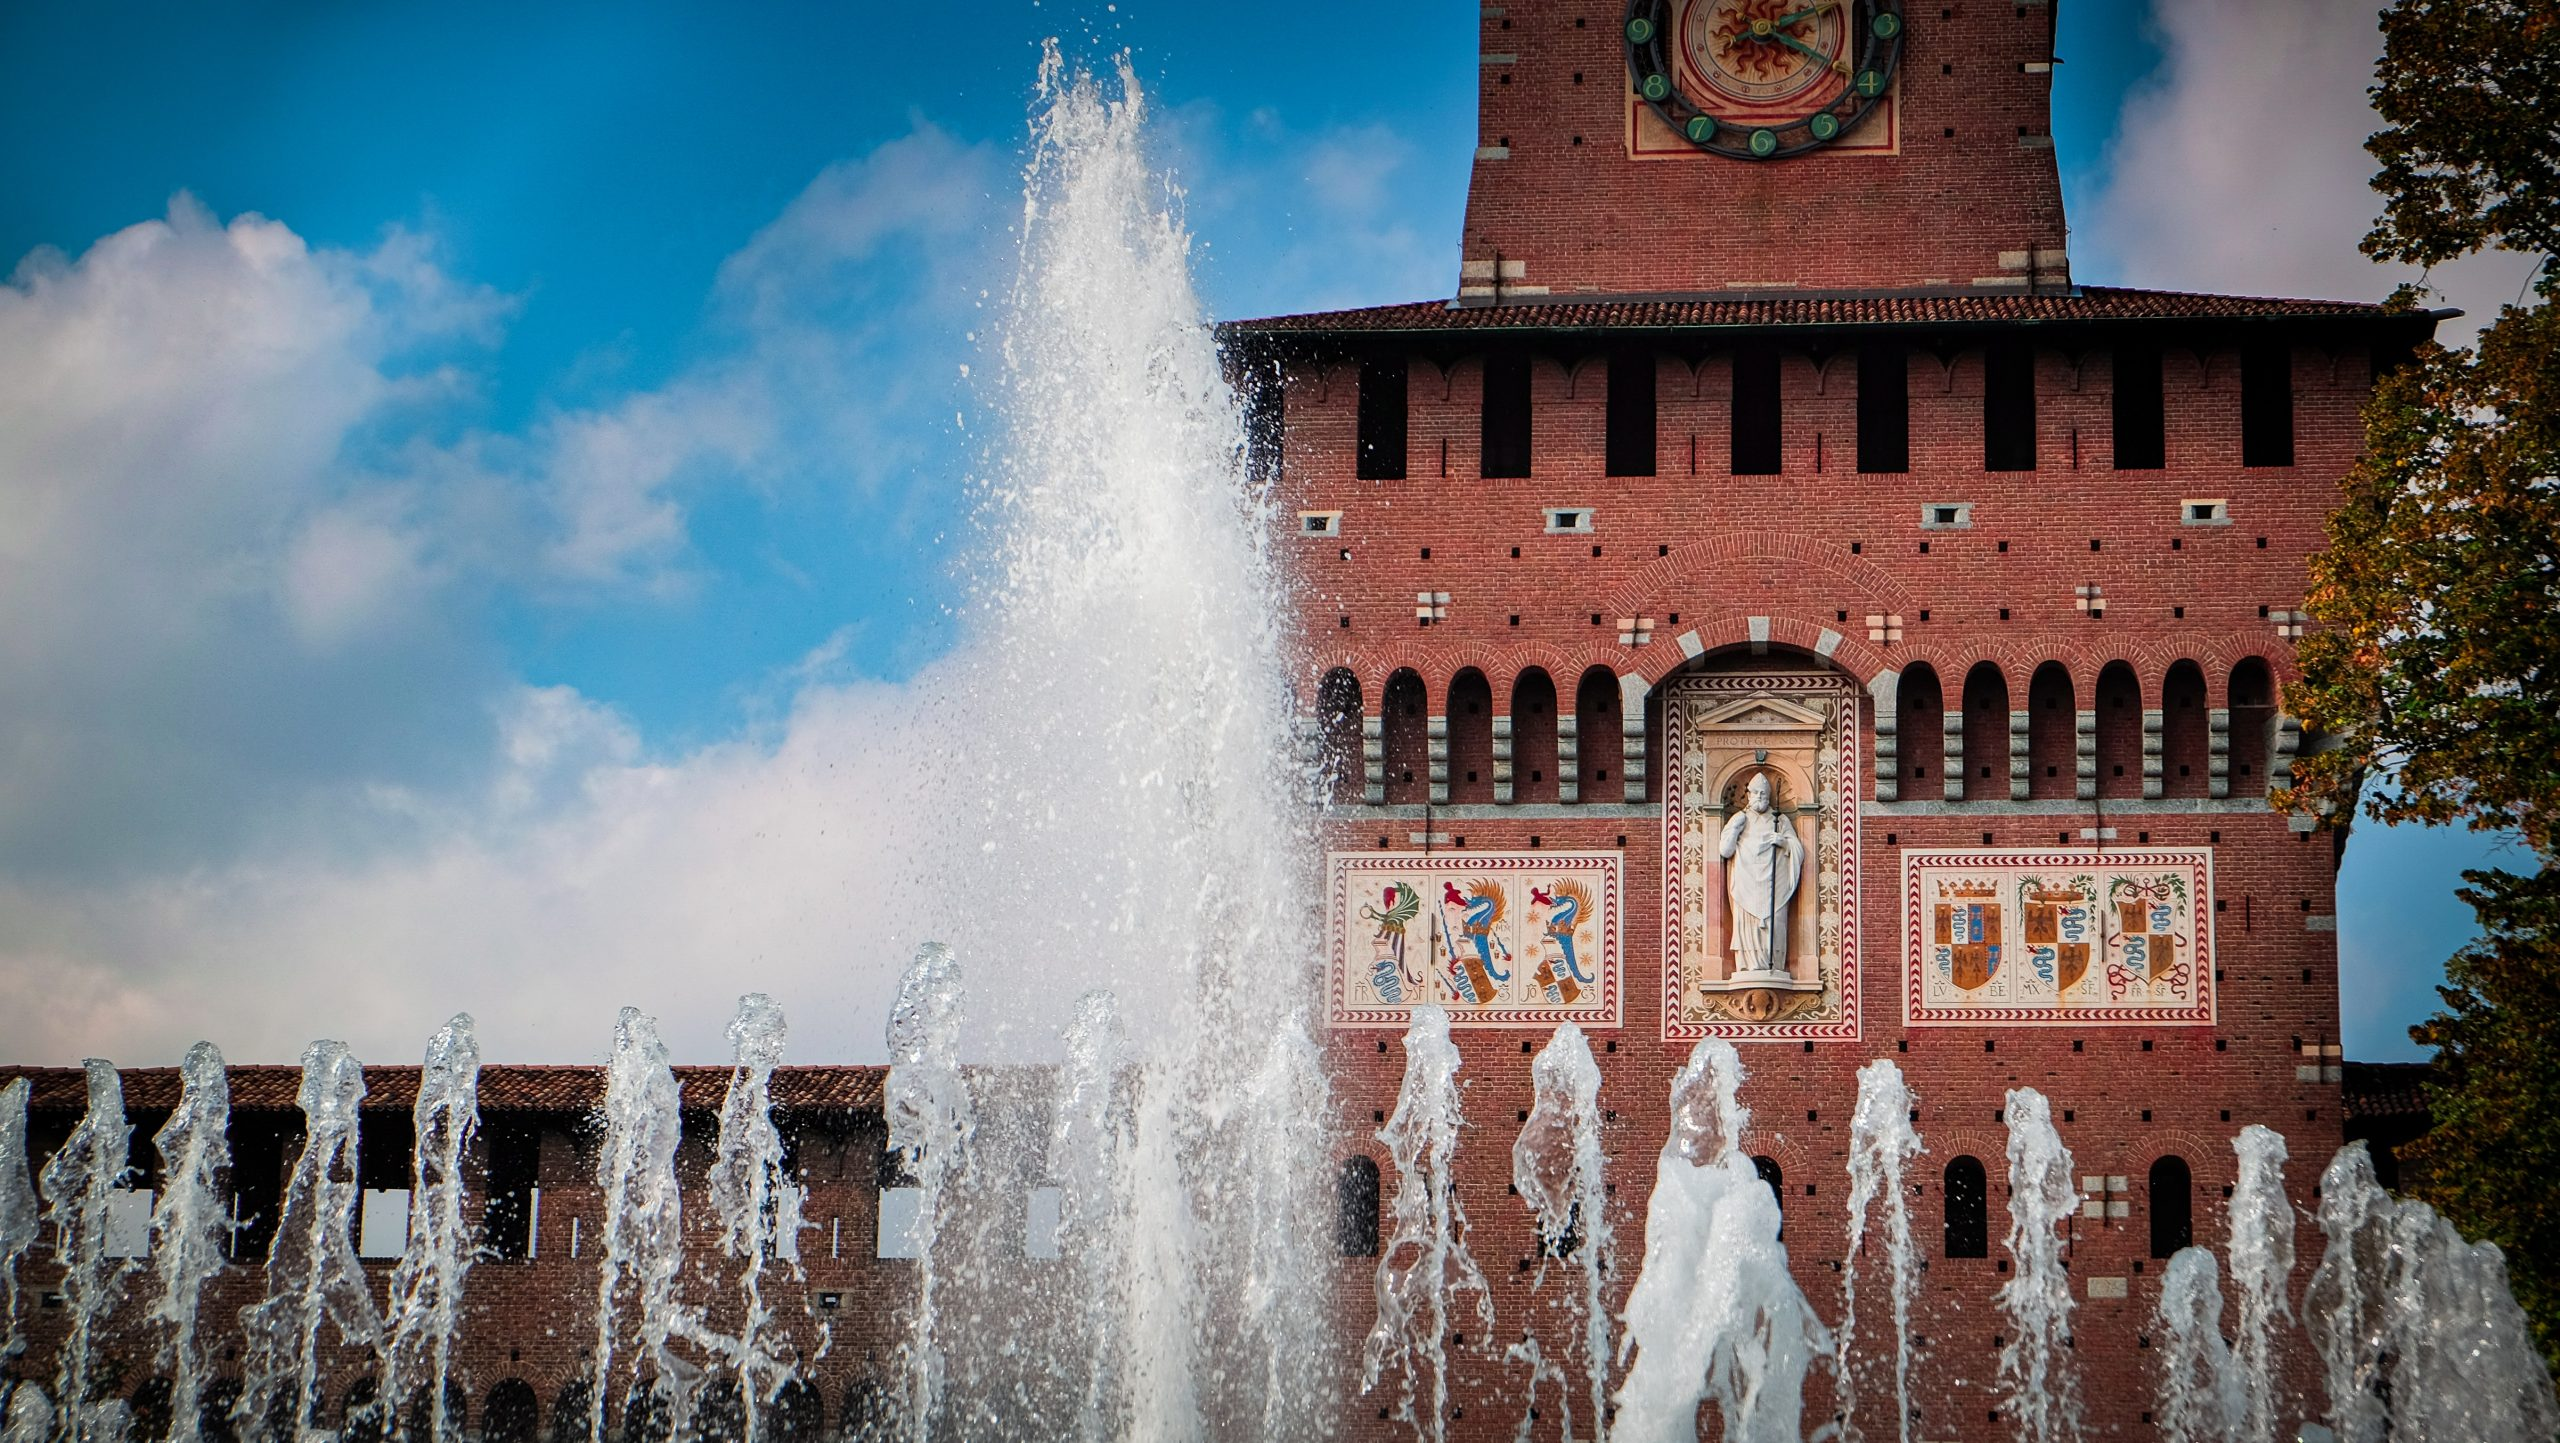 Milan And Its Castles Plural The Milan City Journal